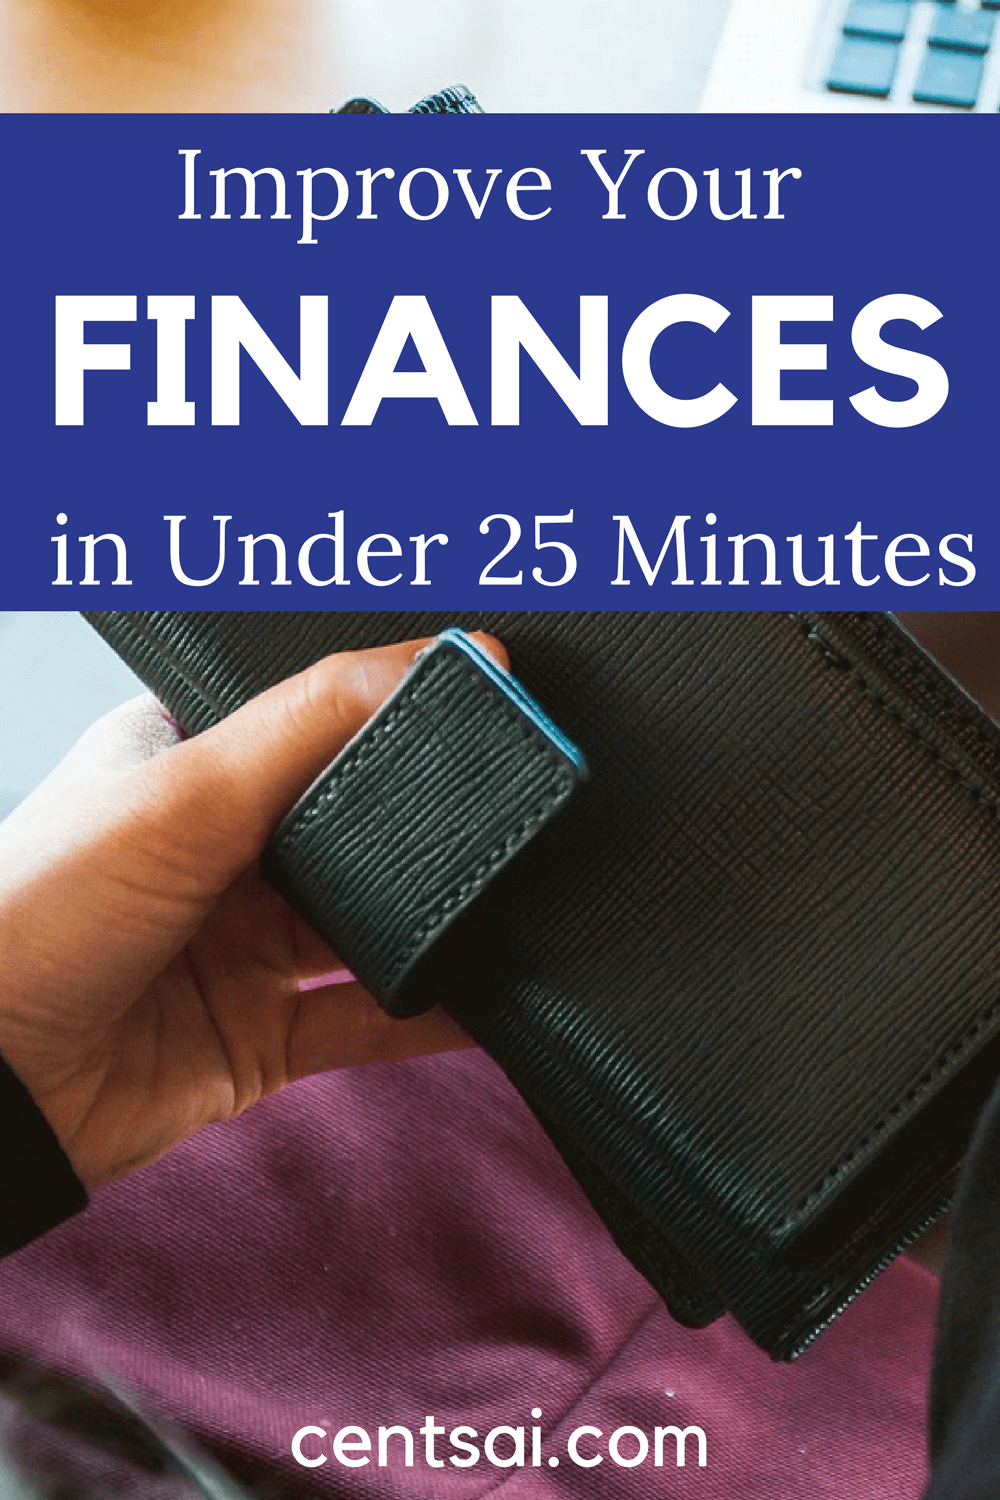 Improve Your Finances in Under 25 Minutes